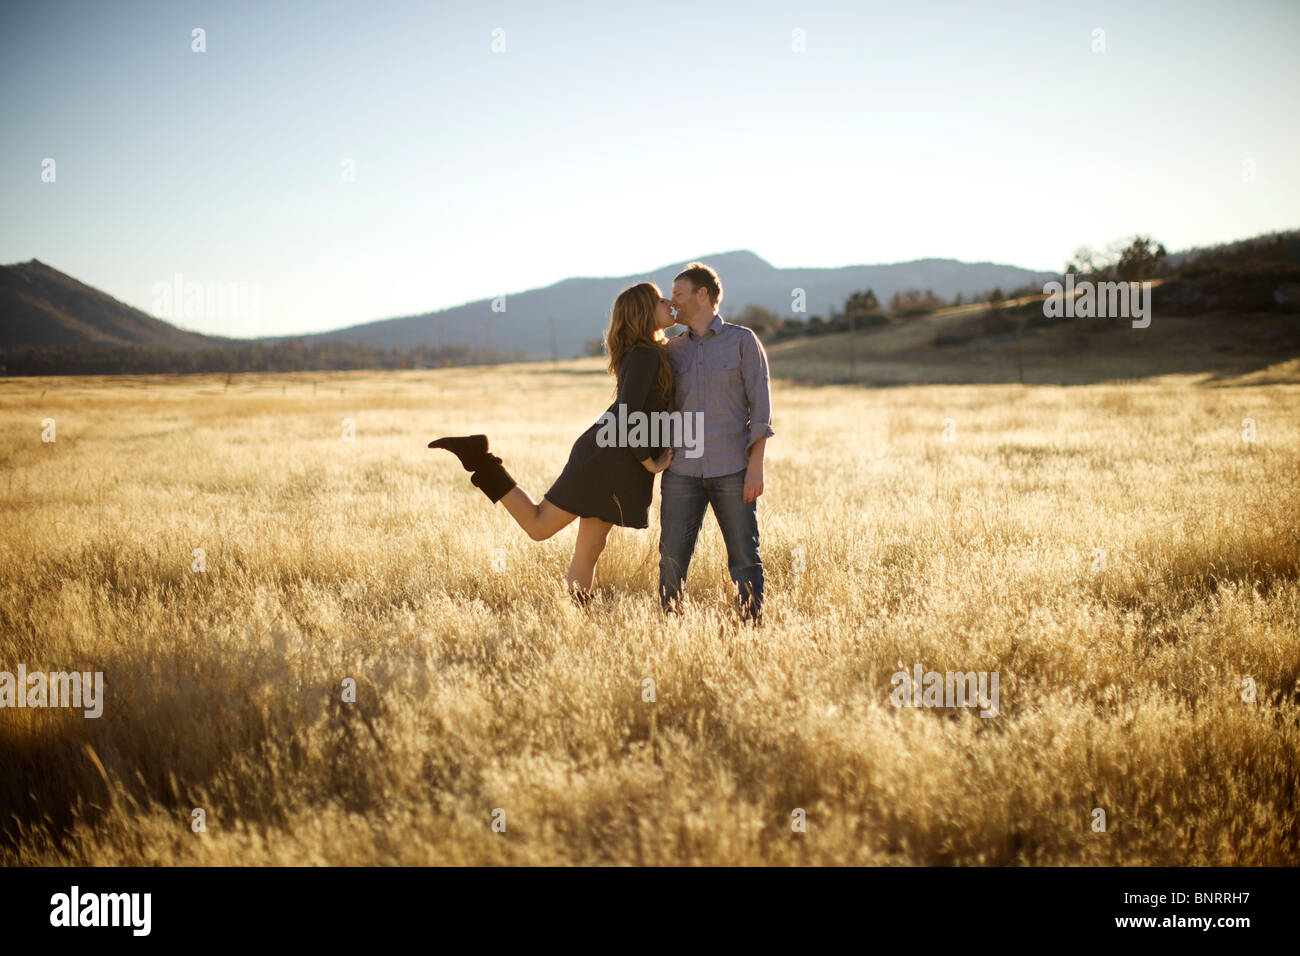 Female approaches male for a kiss in an open field. Stock Photo